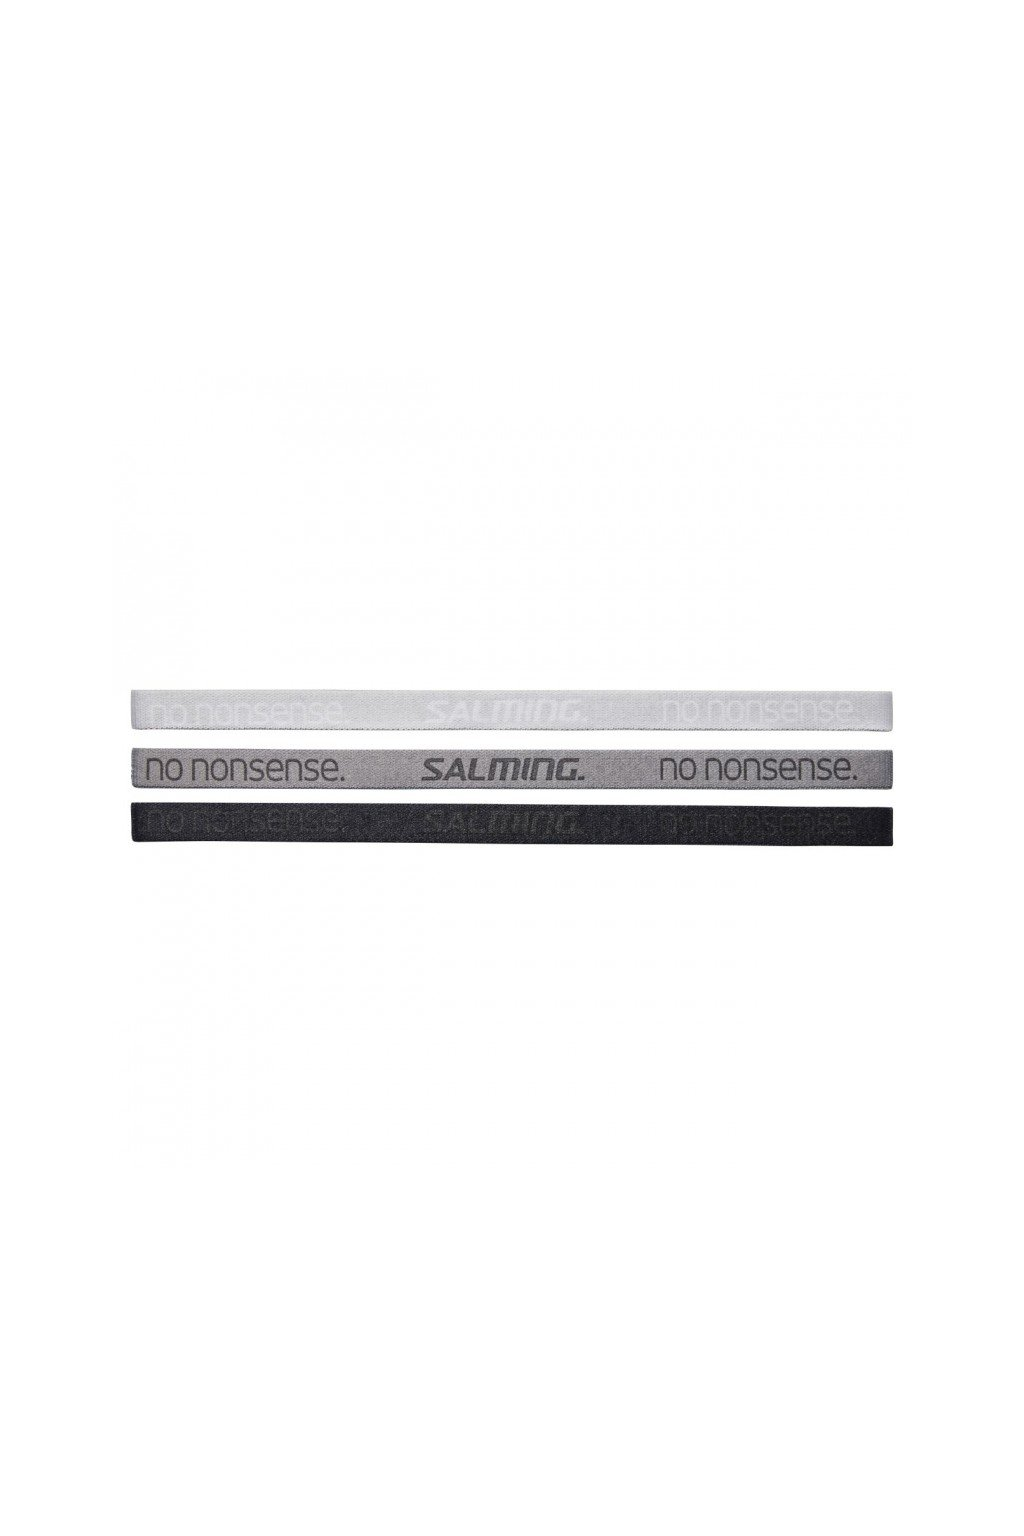 salming hairband 3 pack grey black